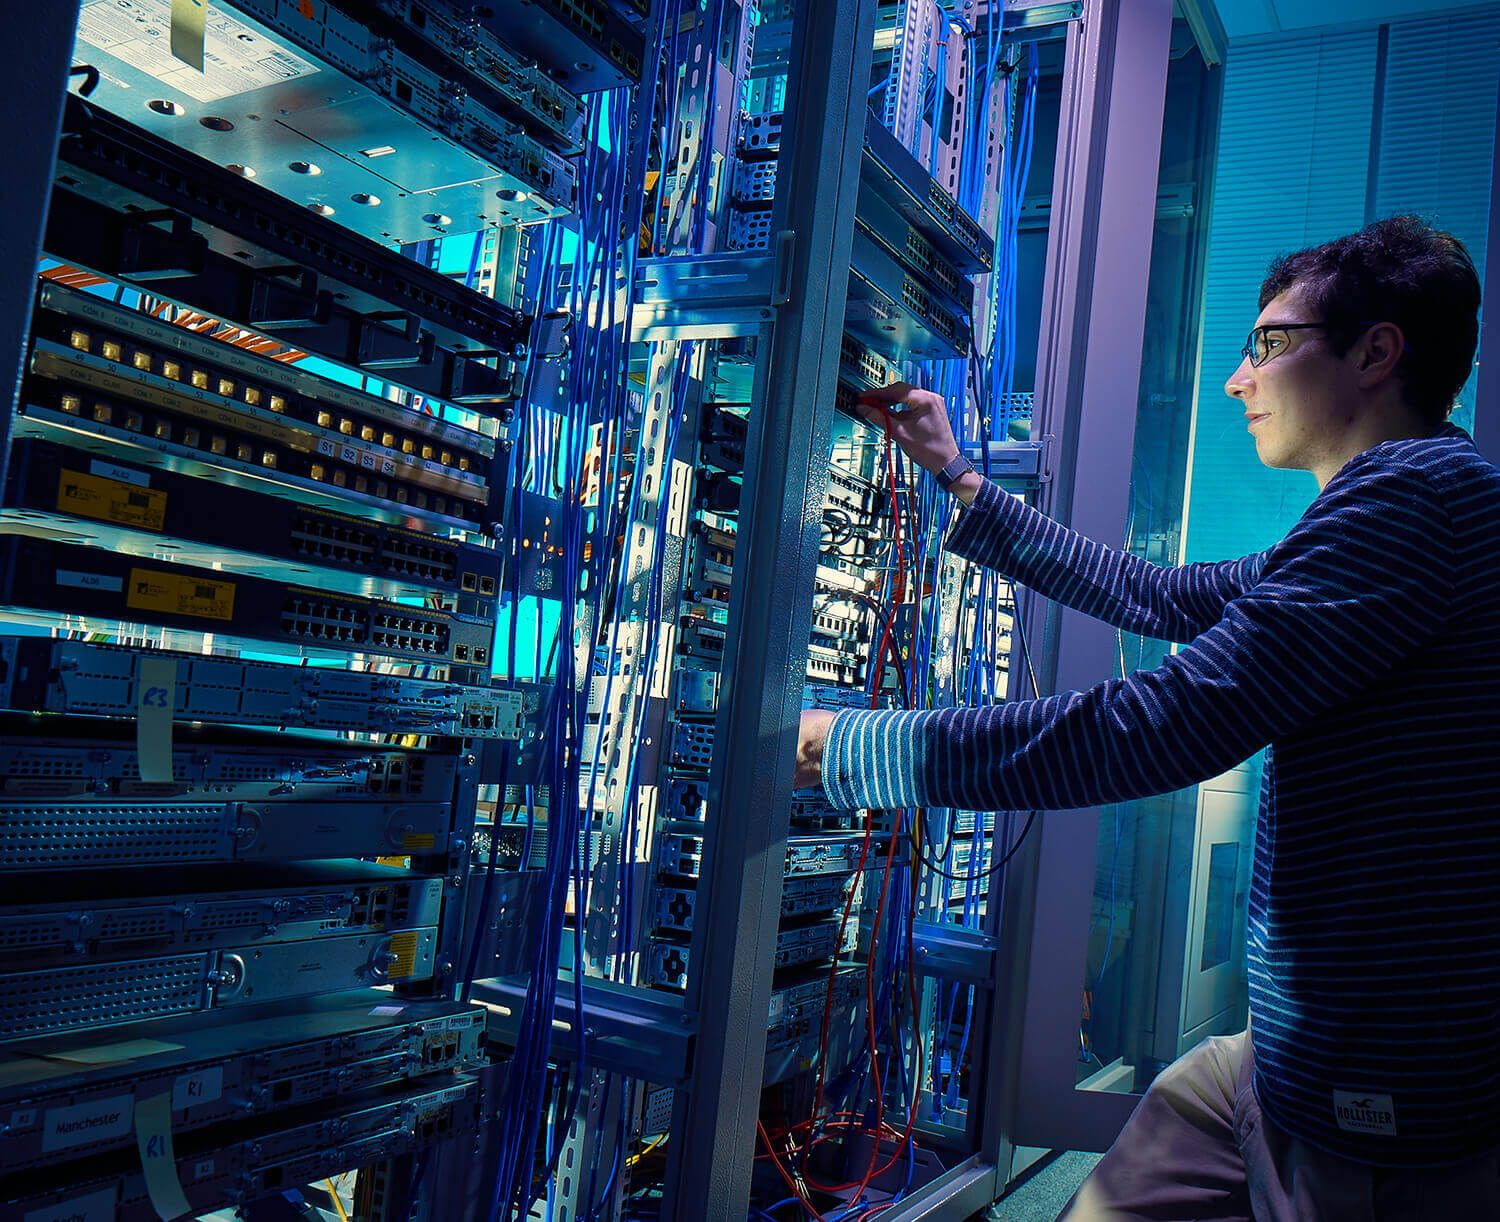 The Leader in Networking: Cisco